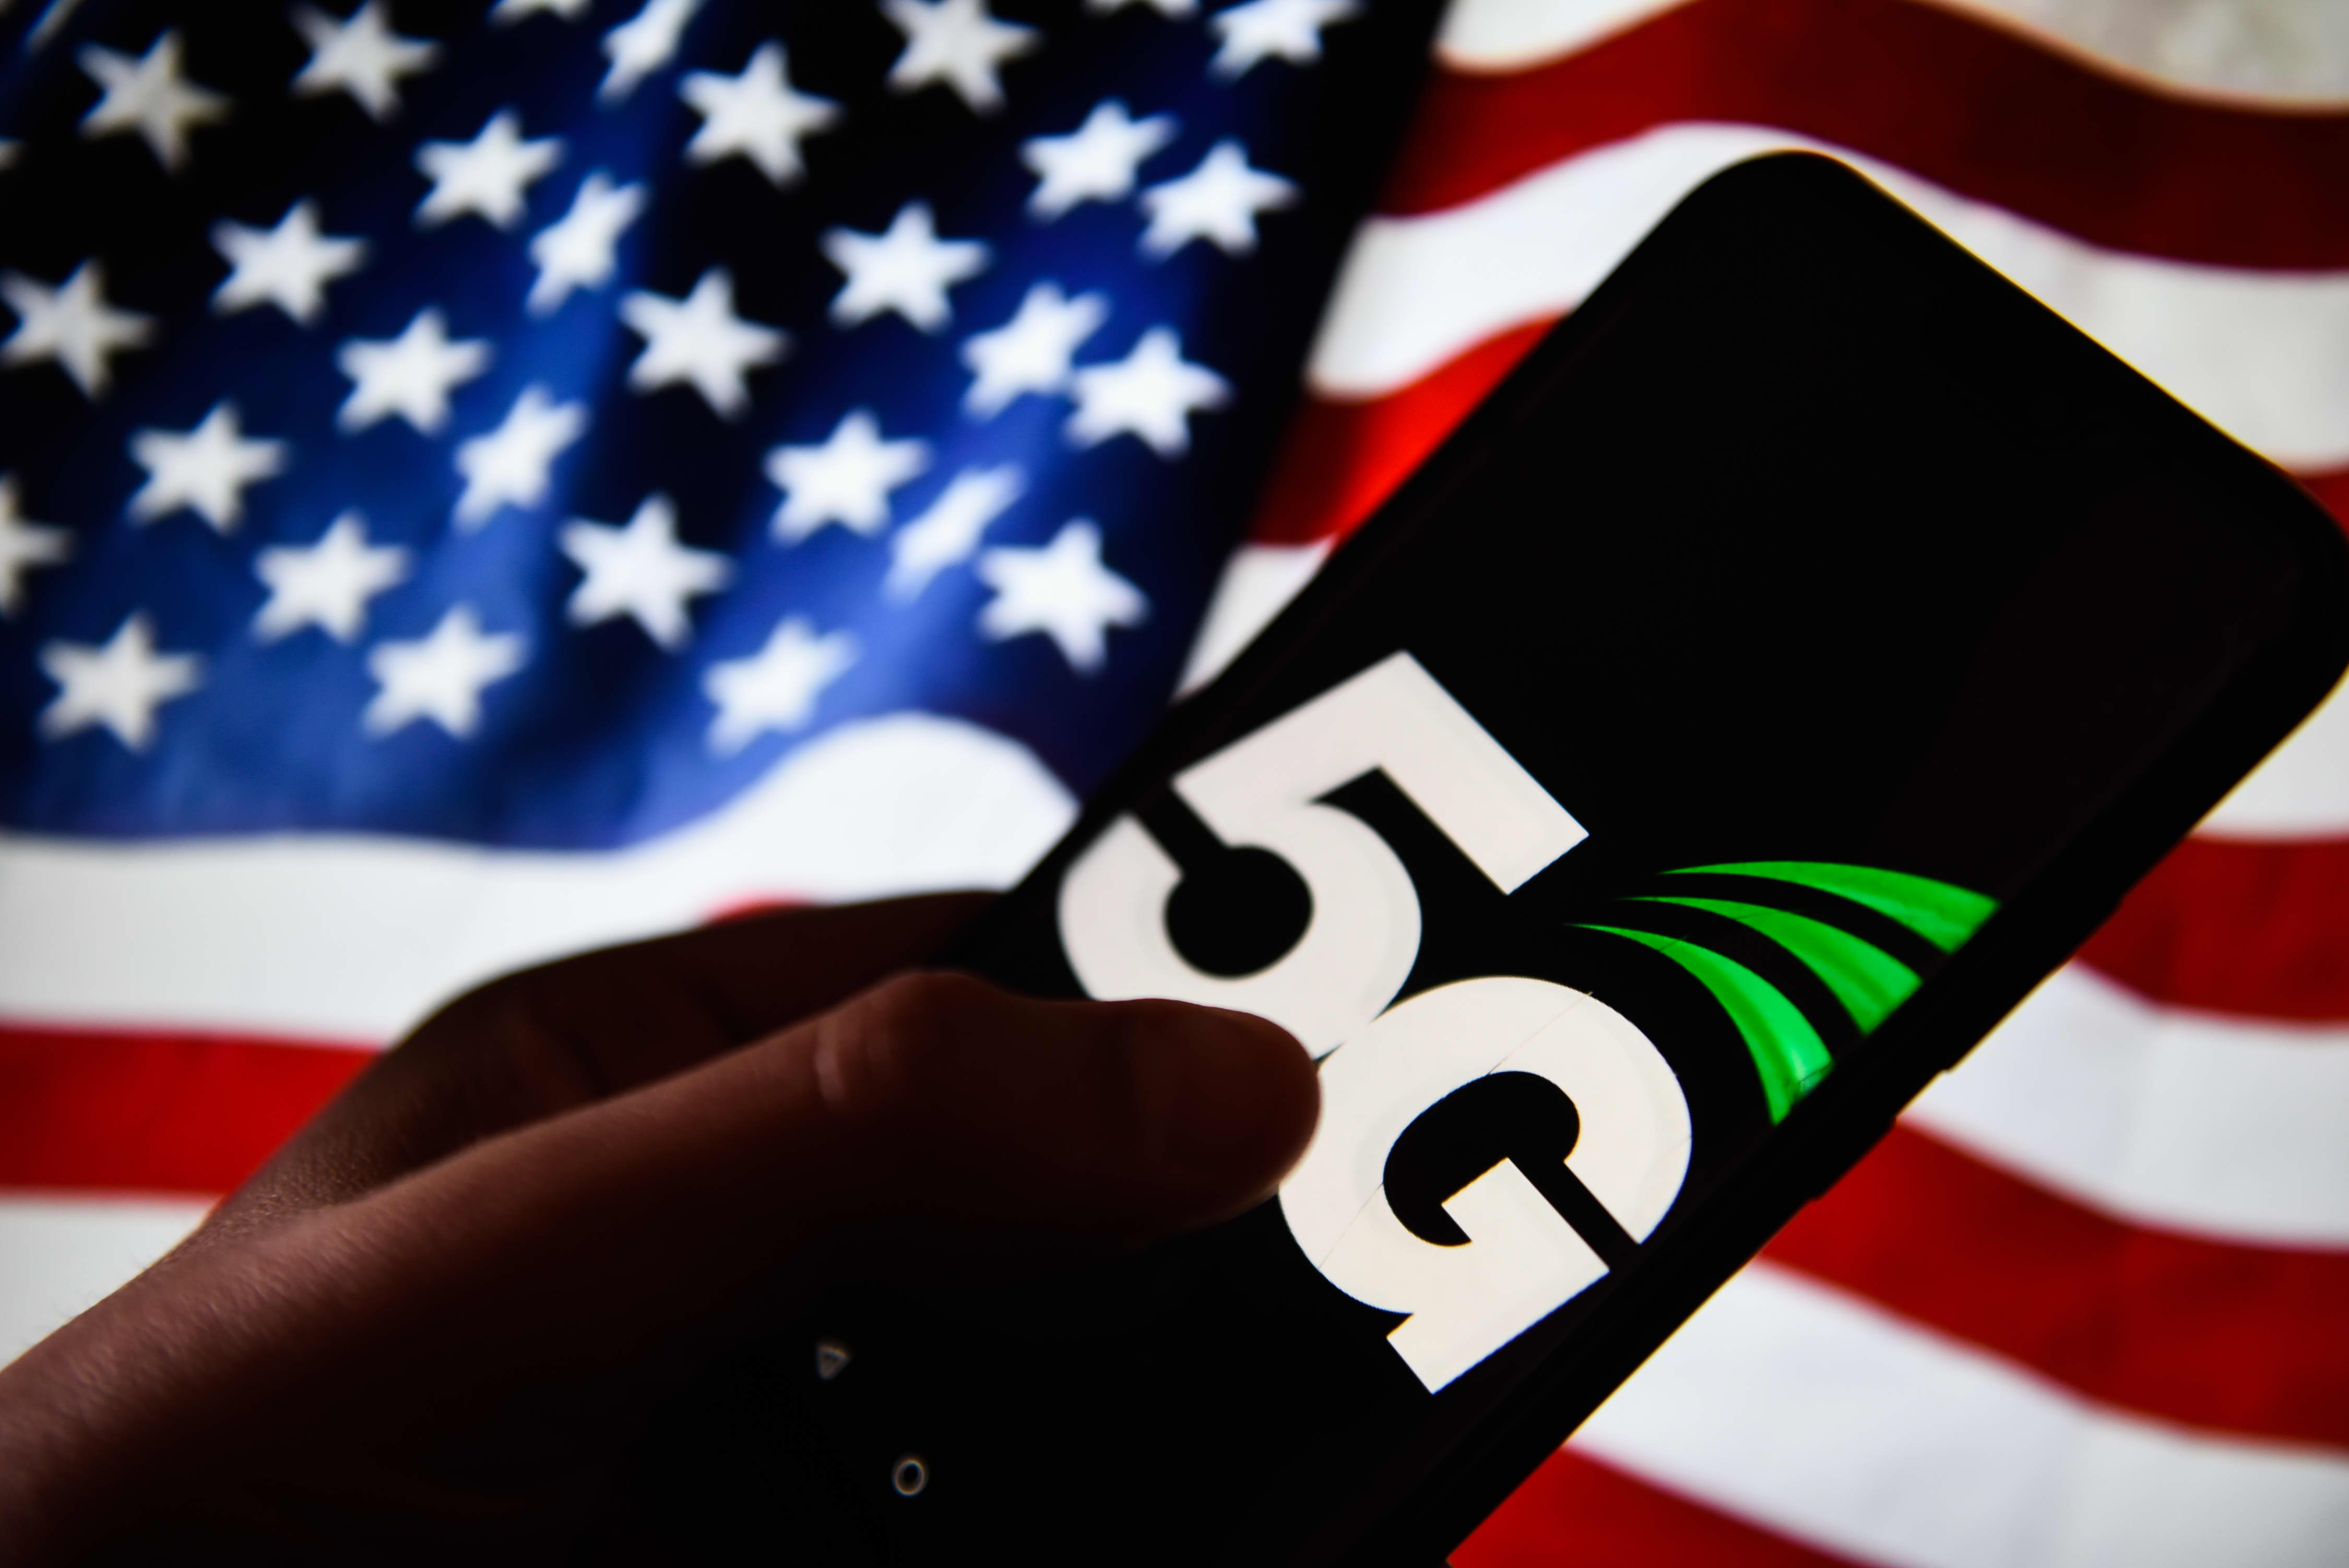 5G Speeds Australia us attacks huawei and china, without its own 5g strategy